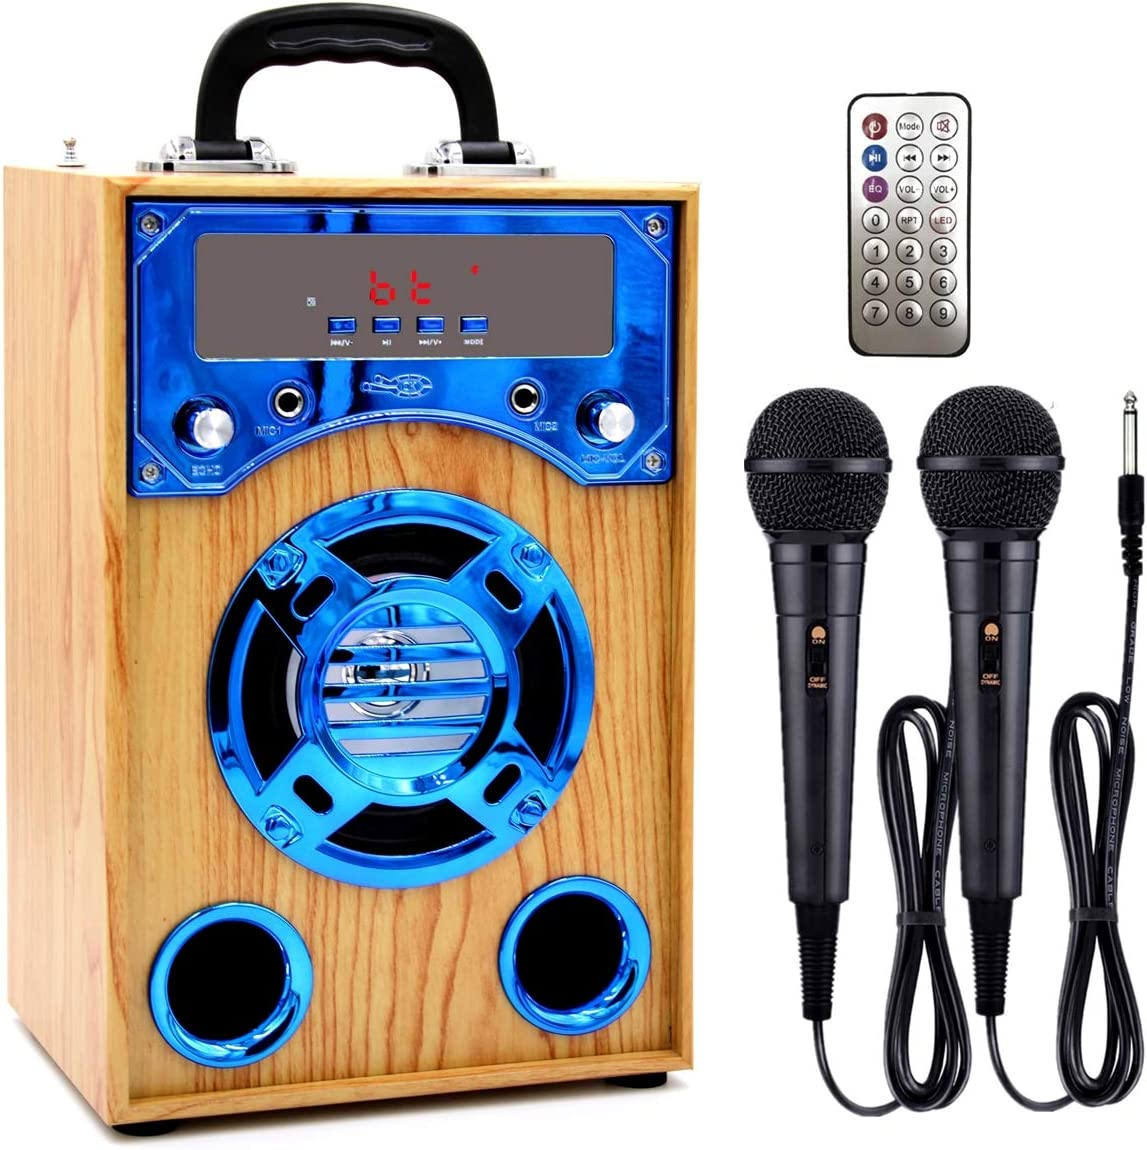 IndeCool Bluetooth Karaoke Machine with 2 Microphones, Wooden Wireless Portable Karaoke Machine Music MP3 Player for Home Outdoor Trip Party Gift (Blue)